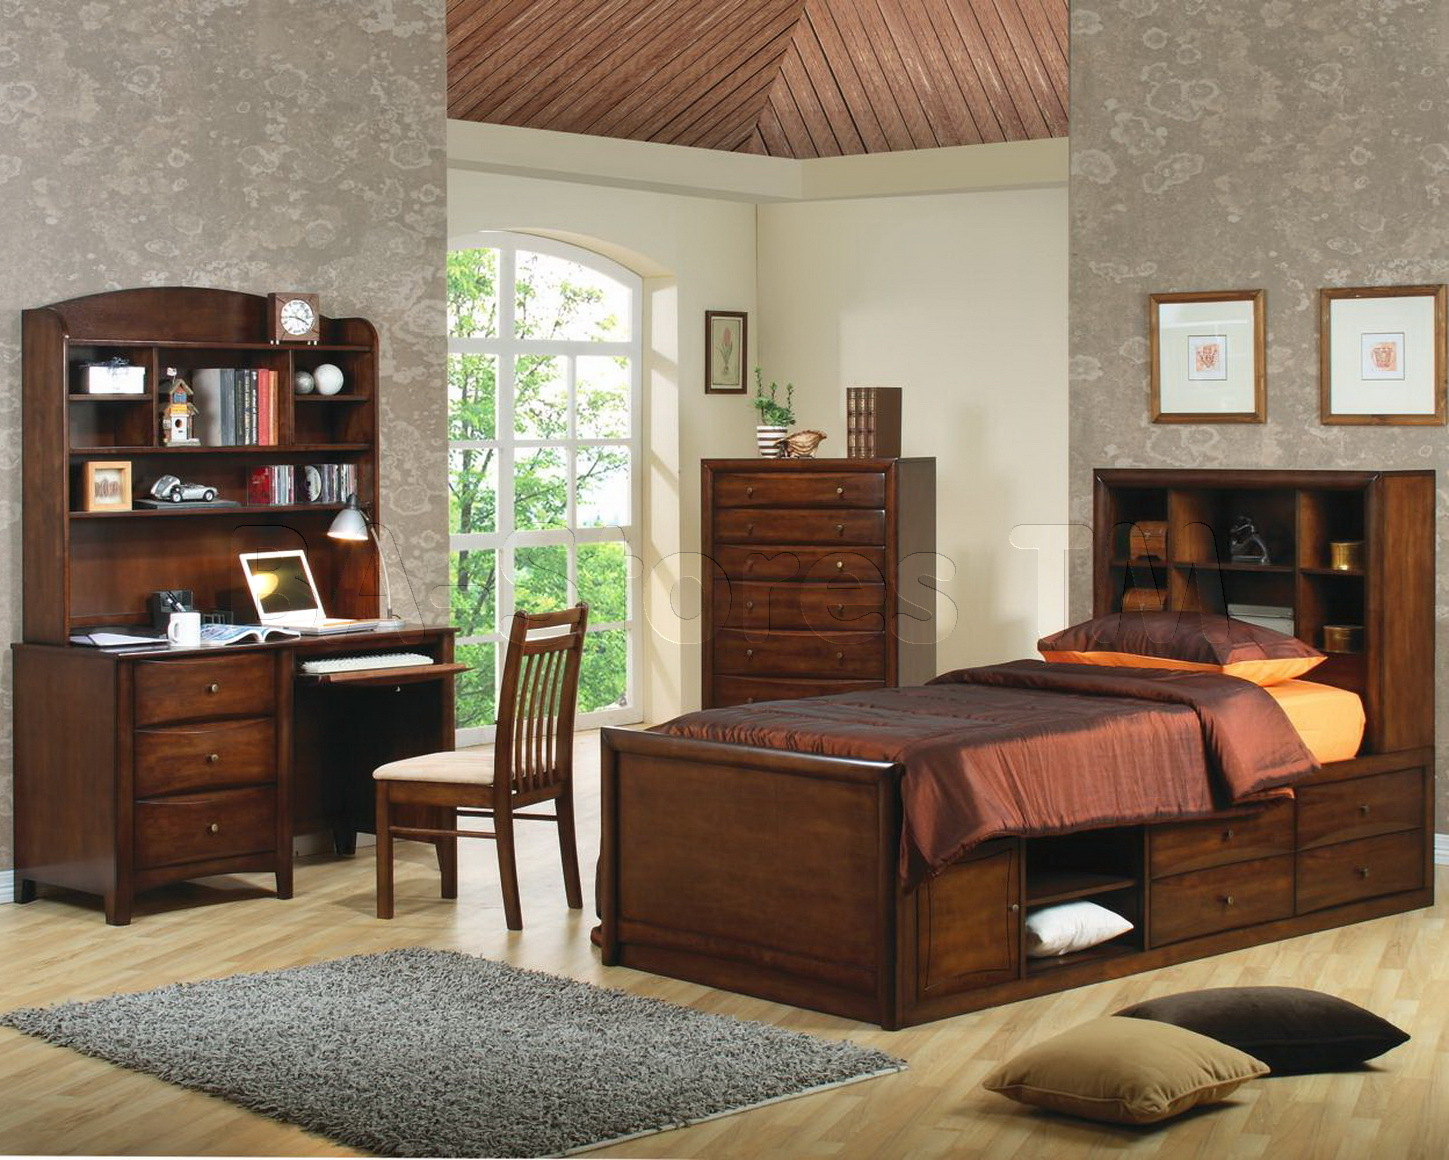 Stunning Youth Bedroom Sets darbylanefurniturecom